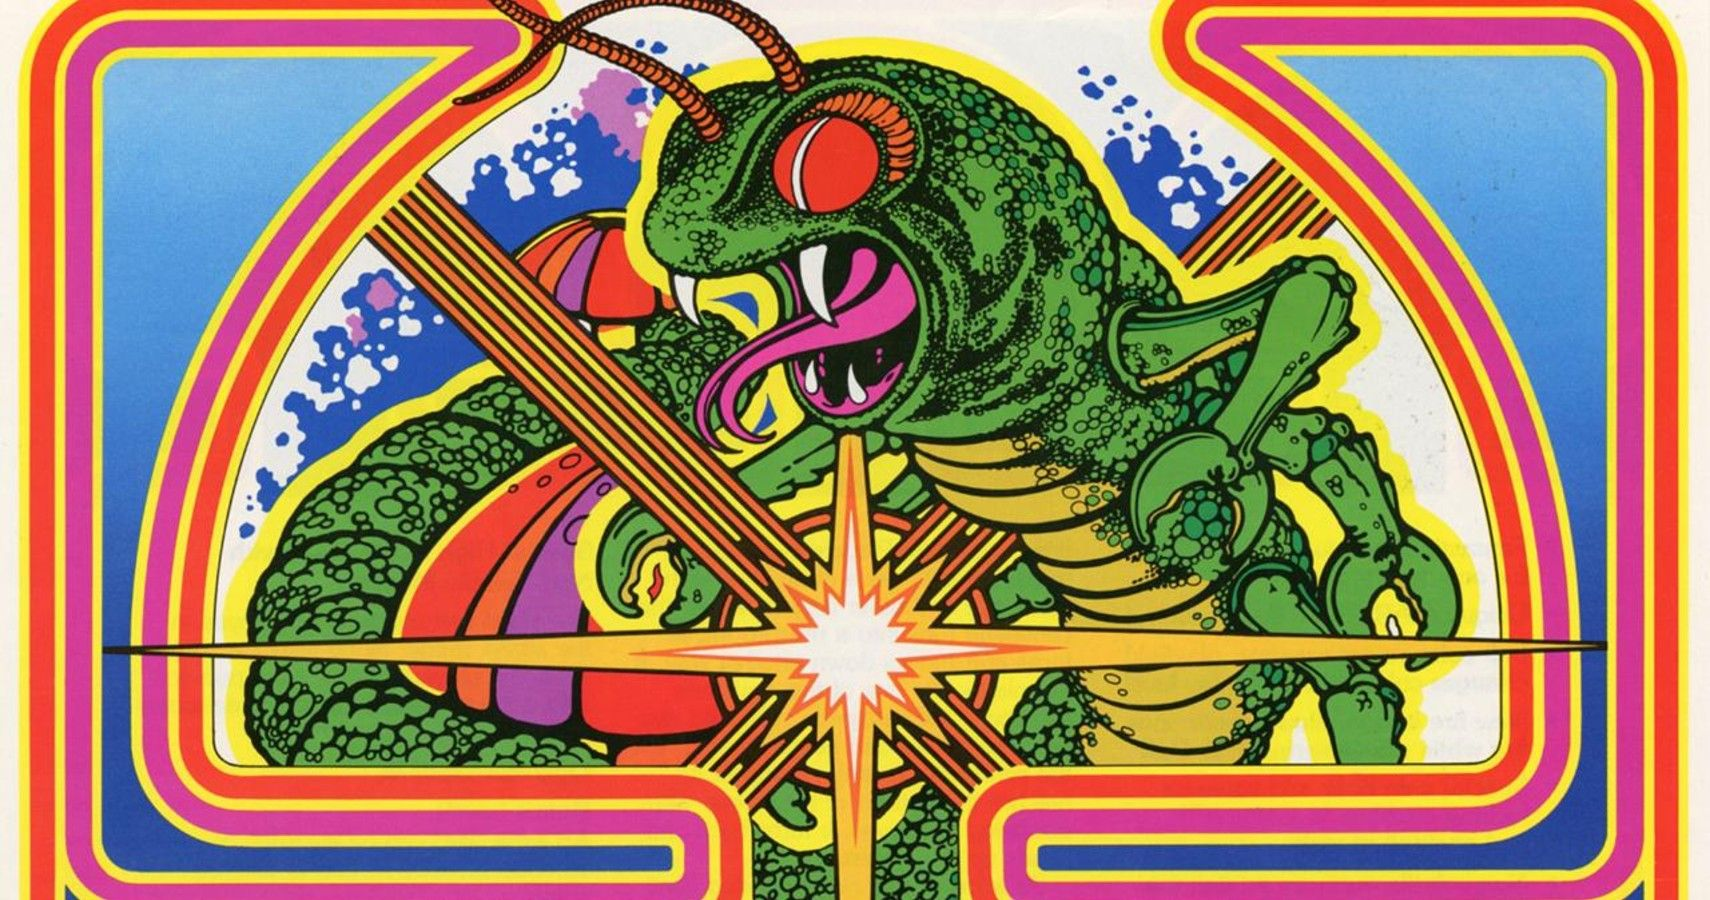 Centipede 10 Mind Blowing Facts About The Arcade Classic